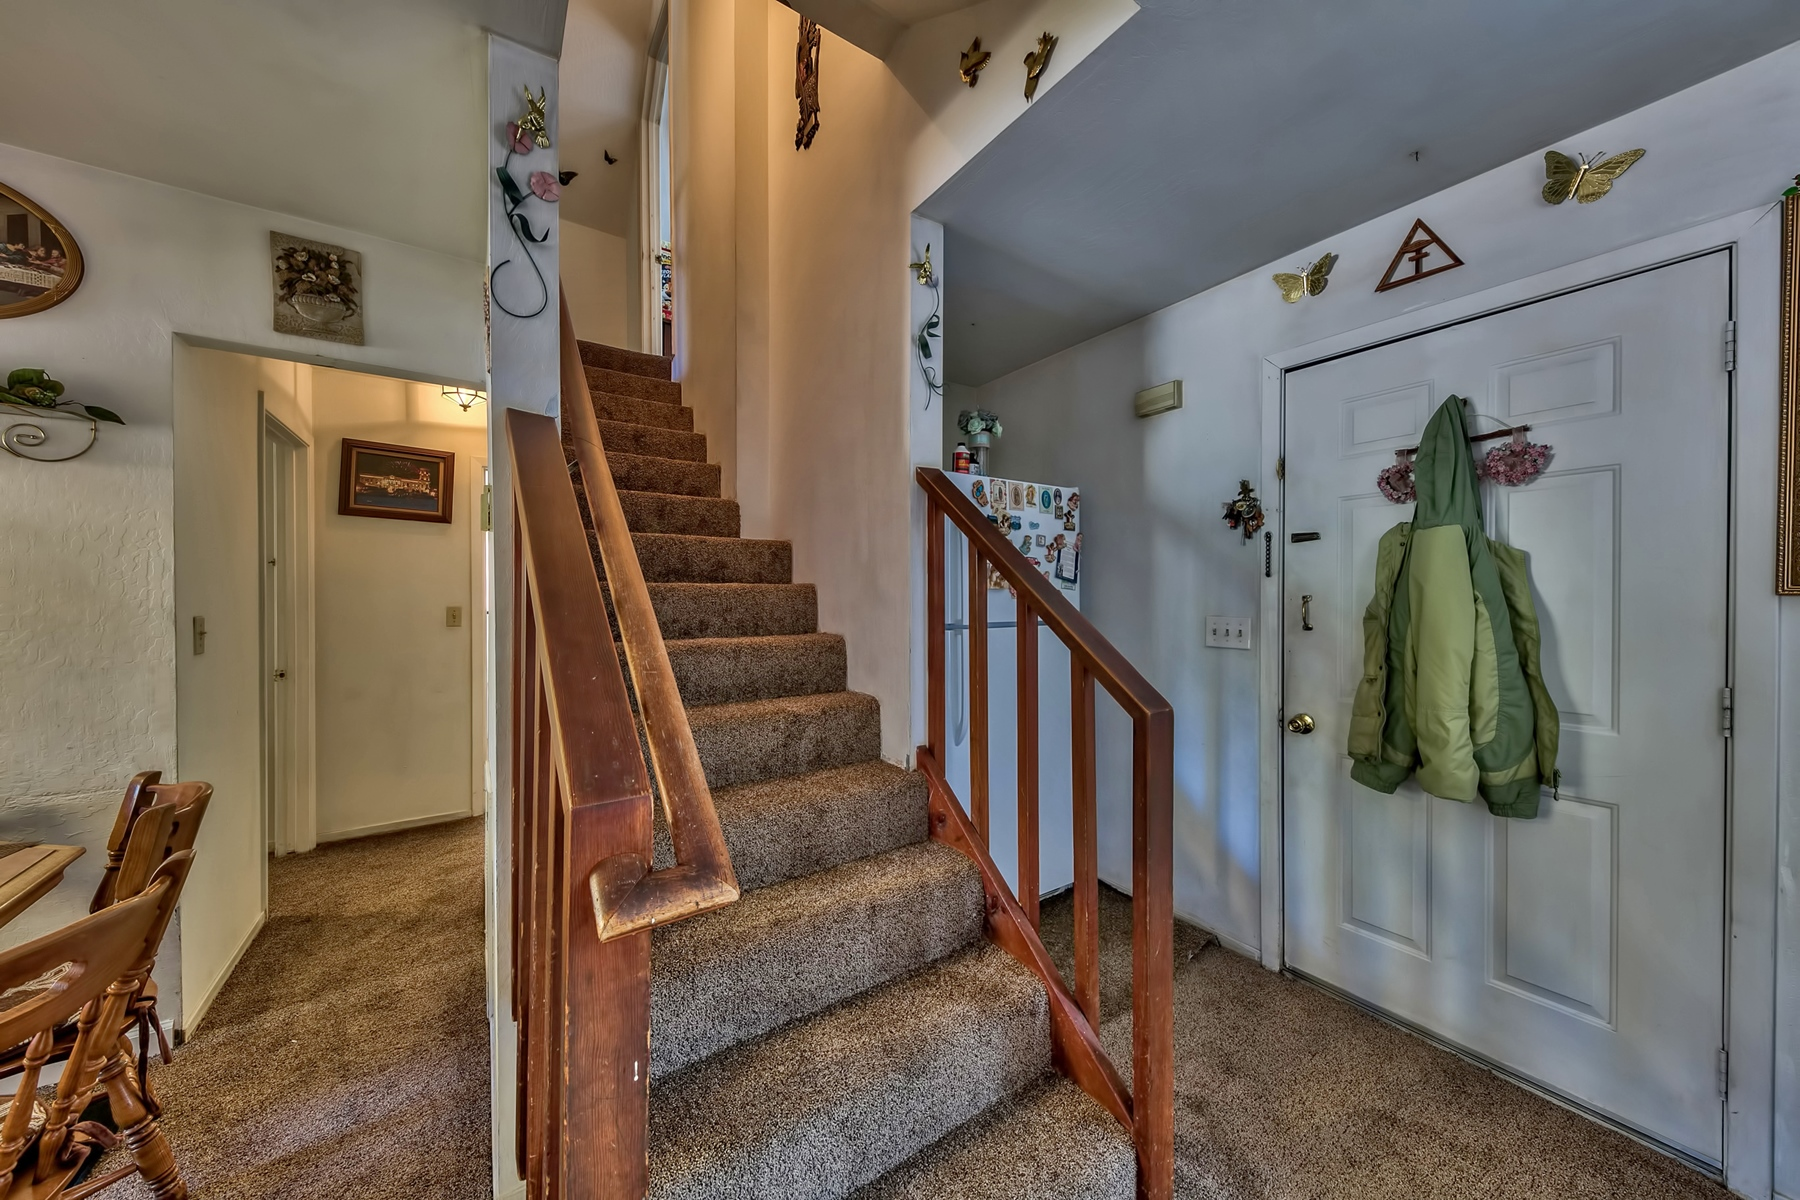 Additional photo for property listing at 3697 Willow Ave, South Lake Tahoe, Ca 96150 3697 Willow Ave. South Lake Tahoe, California 96150 United States